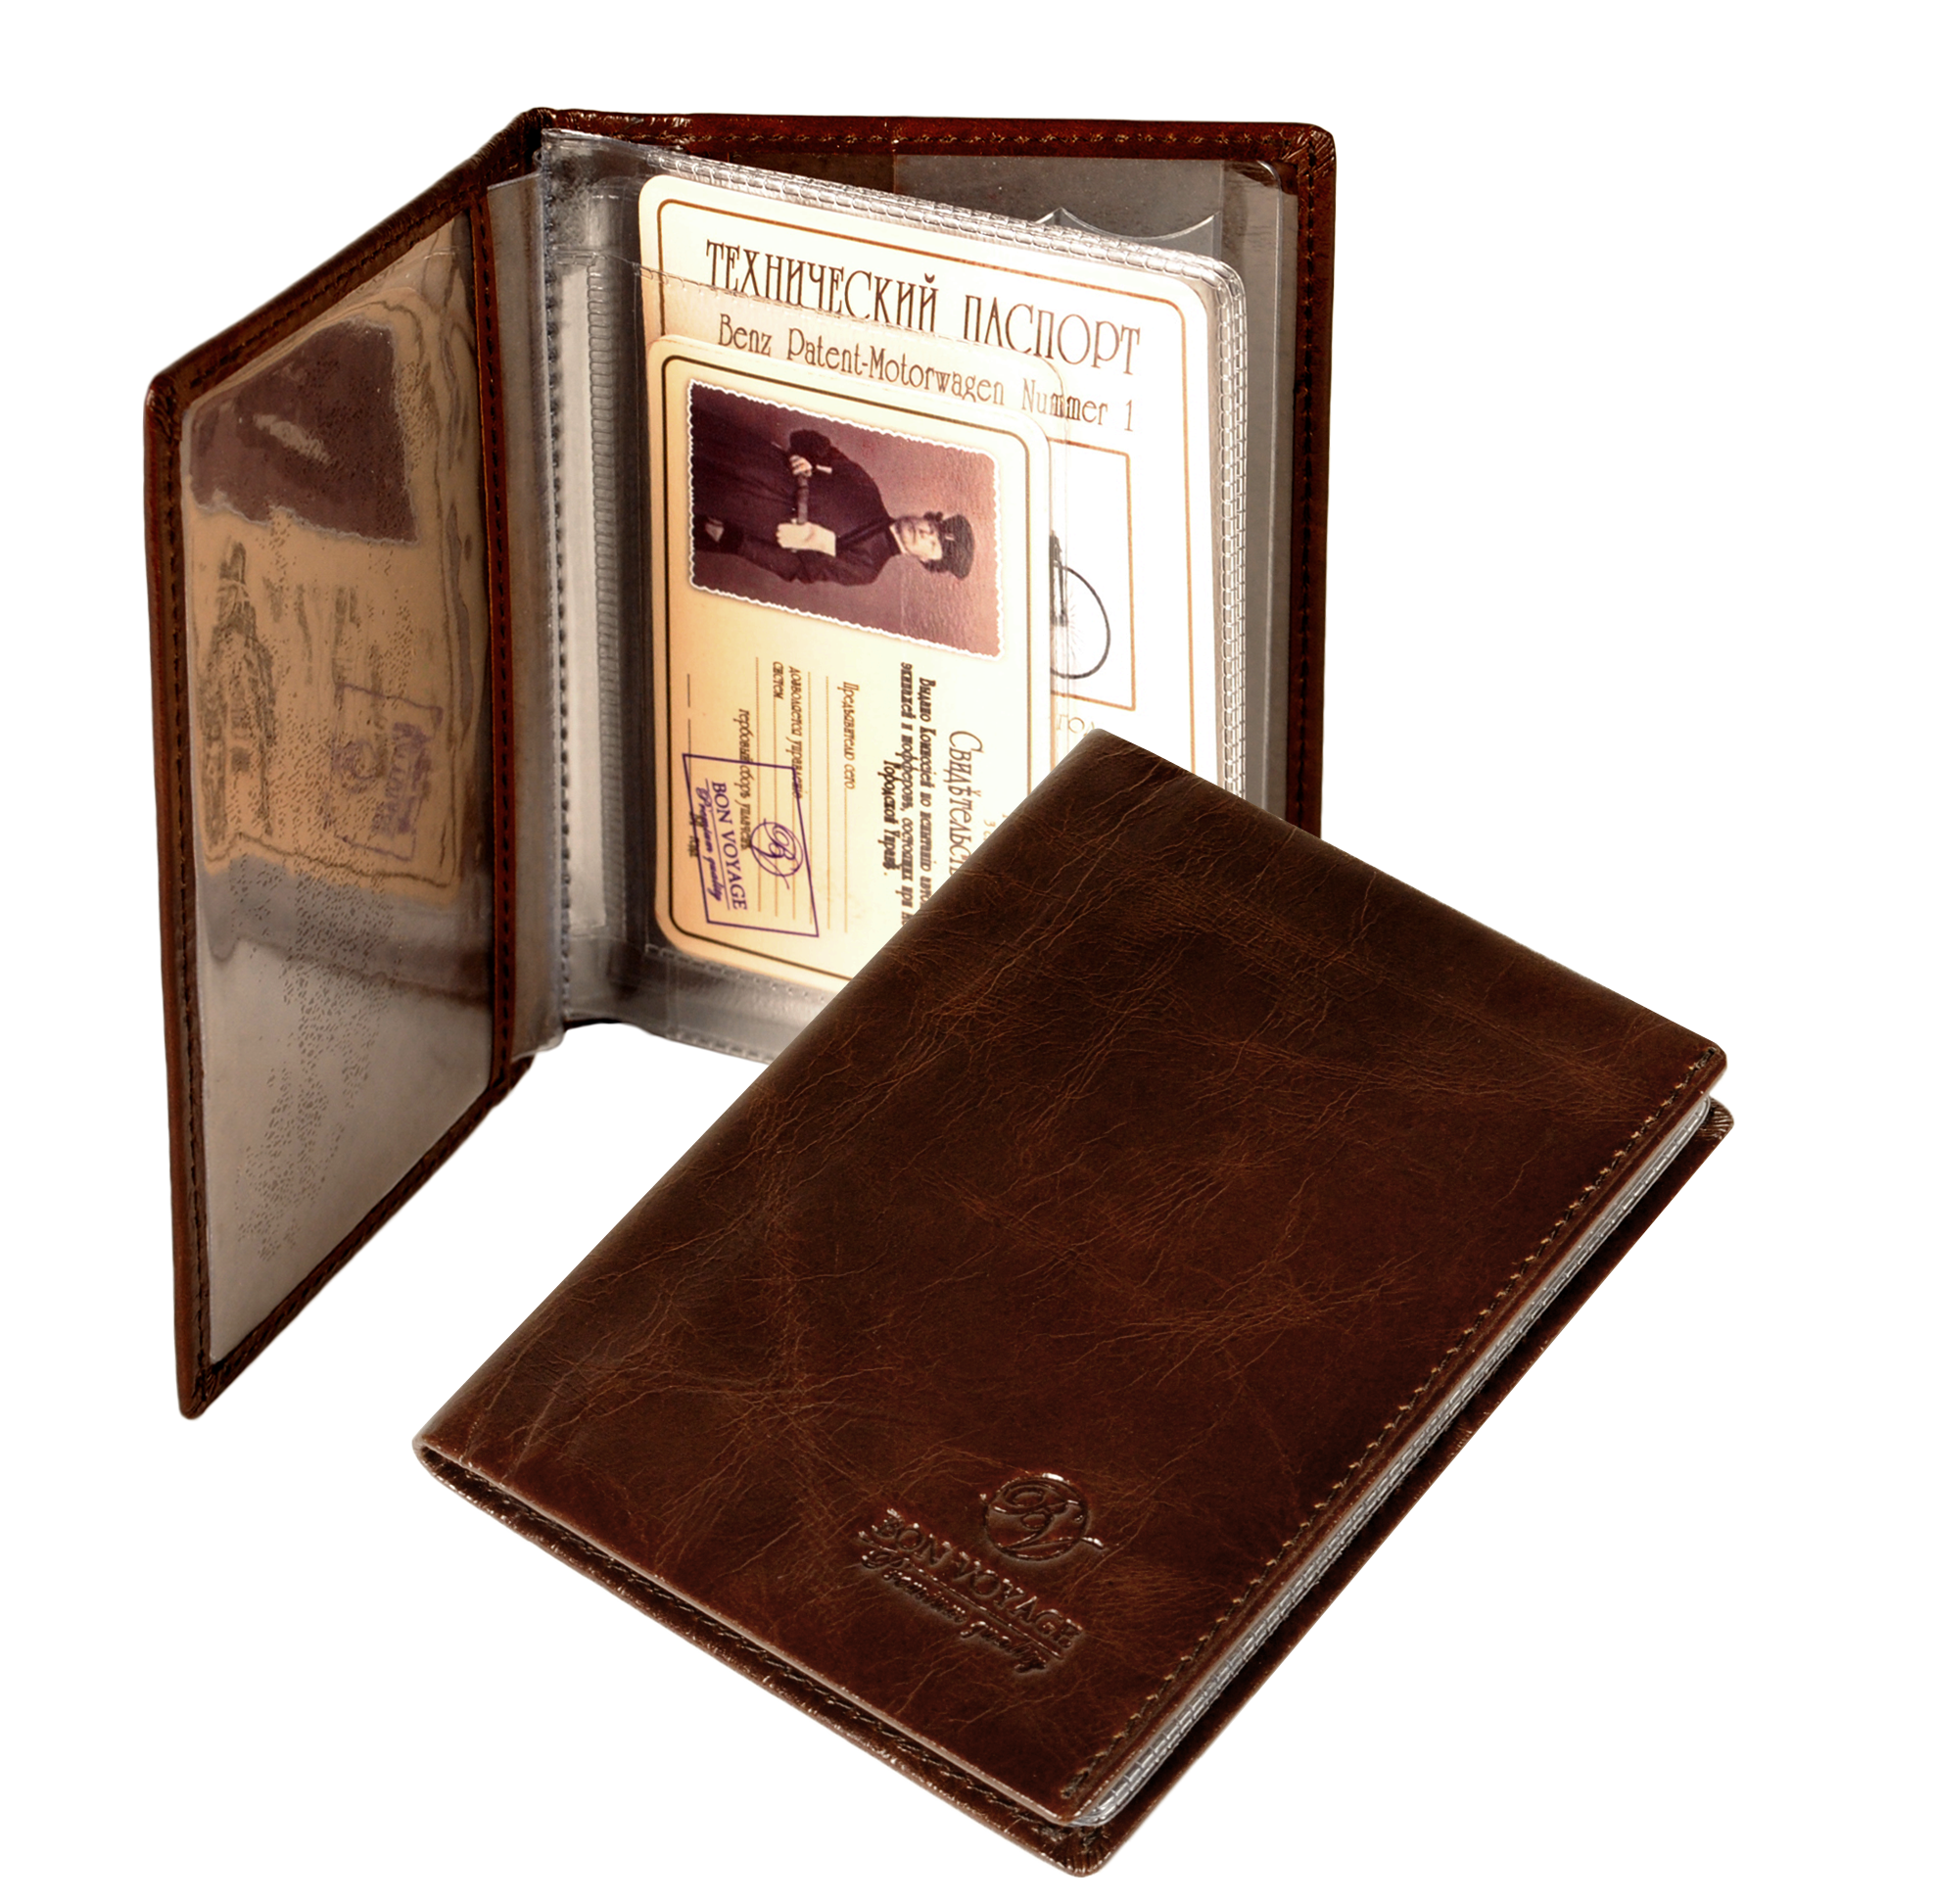 Bon Voyage Unisex Vintage Auto Driver License Cover Holder For Car Driving Documents Made Of Genuine Leather